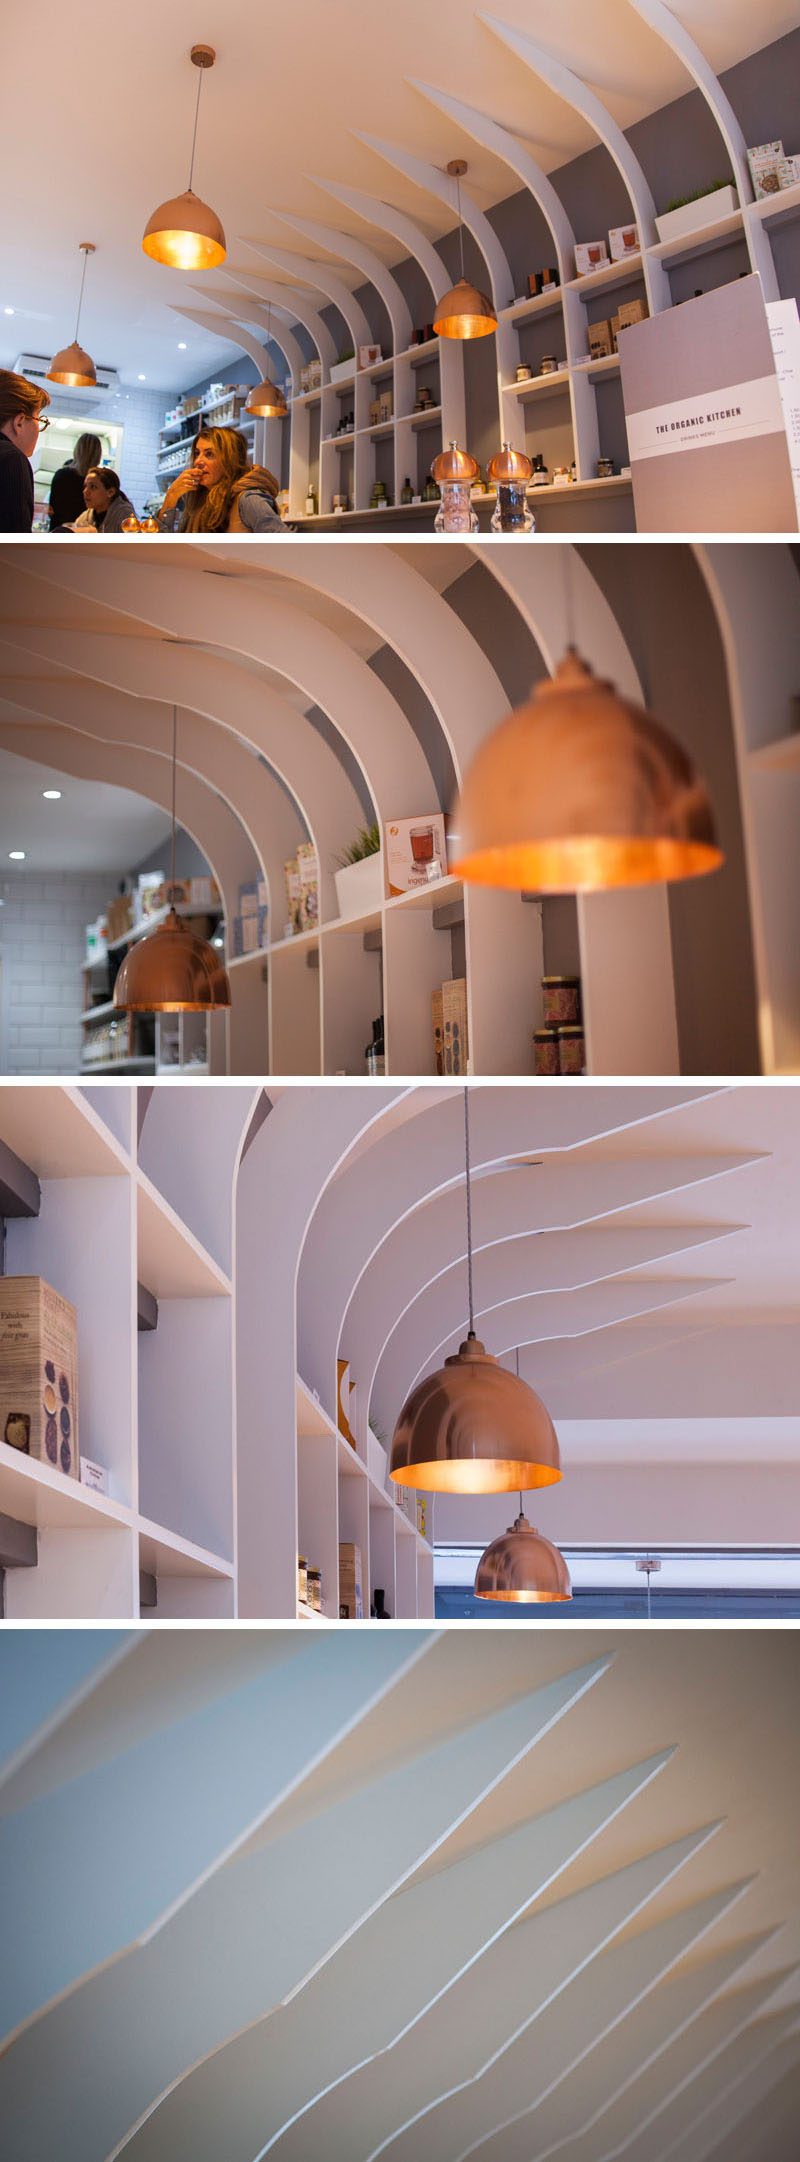 This modern restaurant interior features a copper pendant lights throughout, and a sculptural shelving unit displays the various products that they sell.